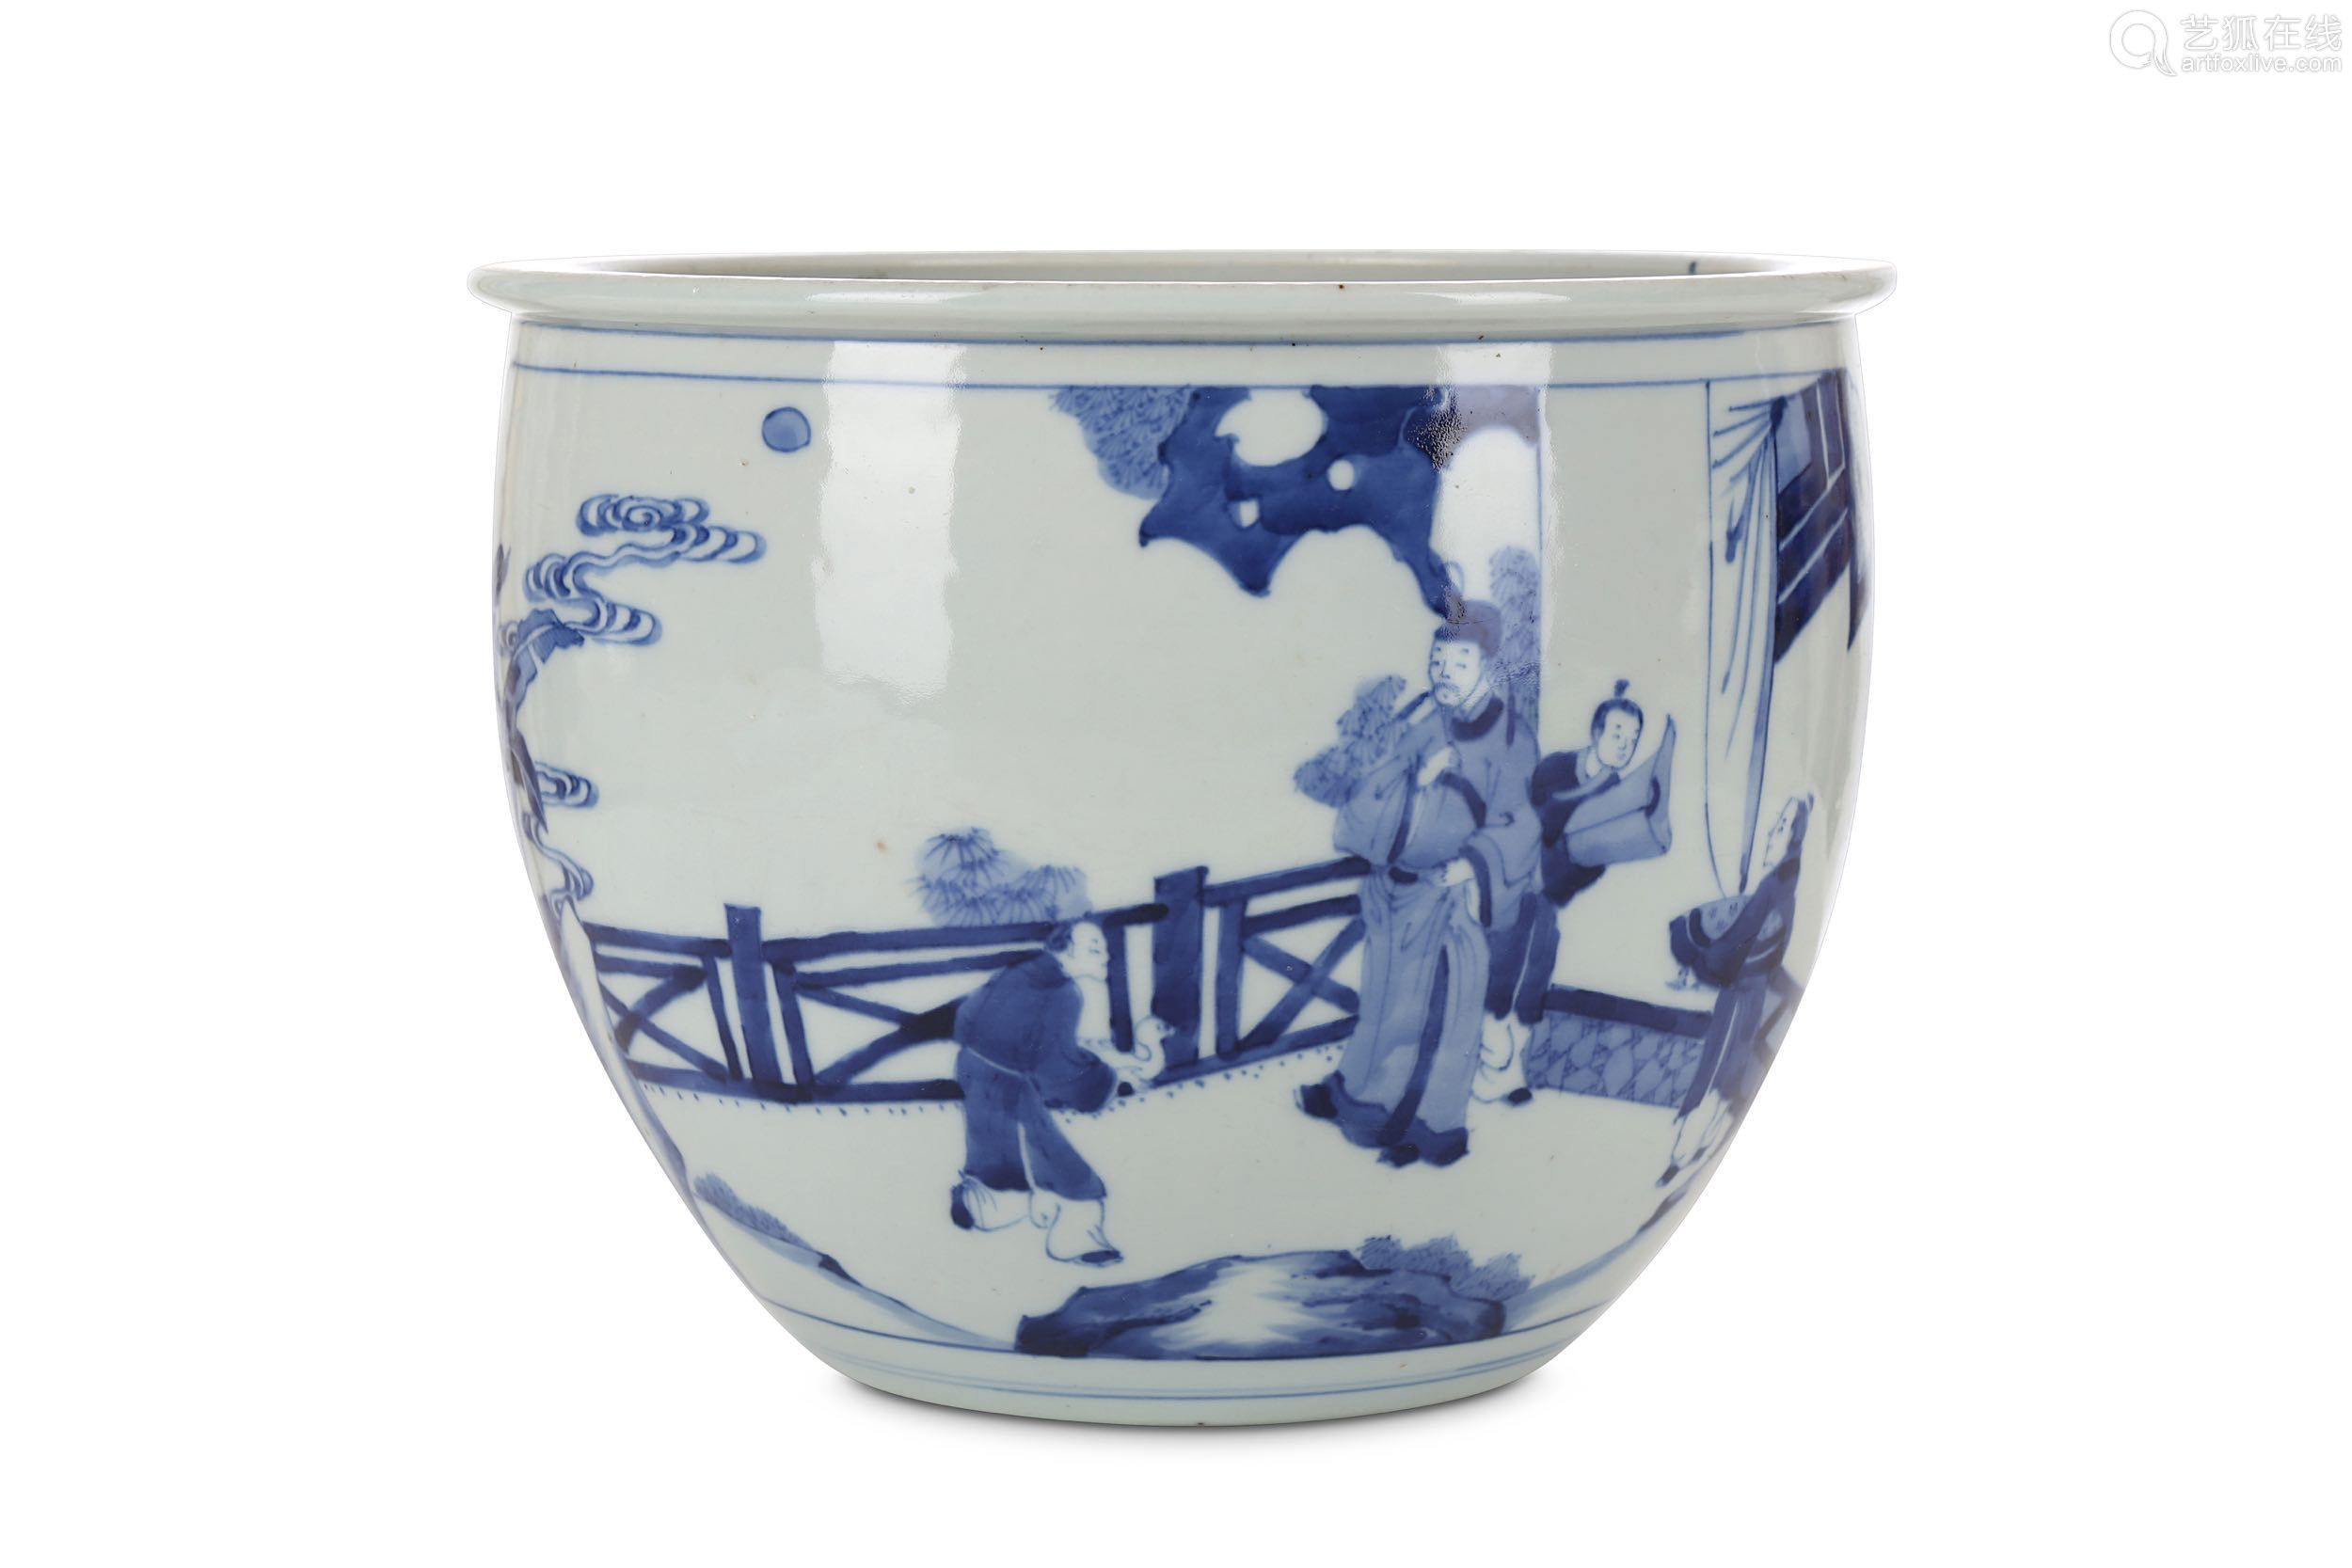 A CHINESE BLUE AND WHITE JARDINIERE. Qing Dynasty, Kangxi period. Painted with a rectangular